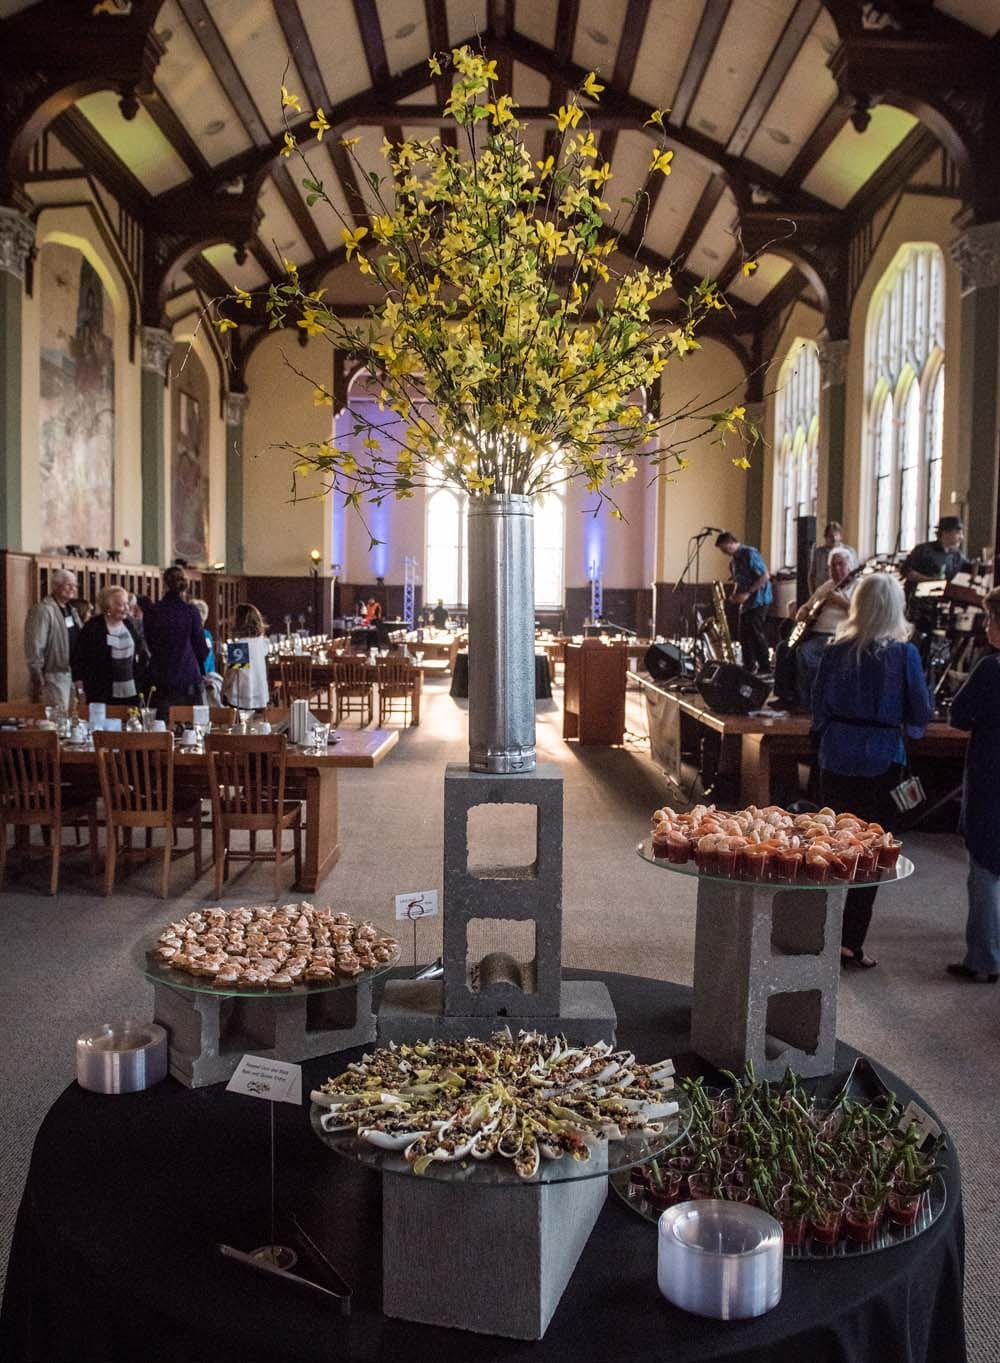 A table in the Great Room decorated with construction materials like cement blocks holds a large bouquet of yellow forsythia and trays of hors d'oeuvres.